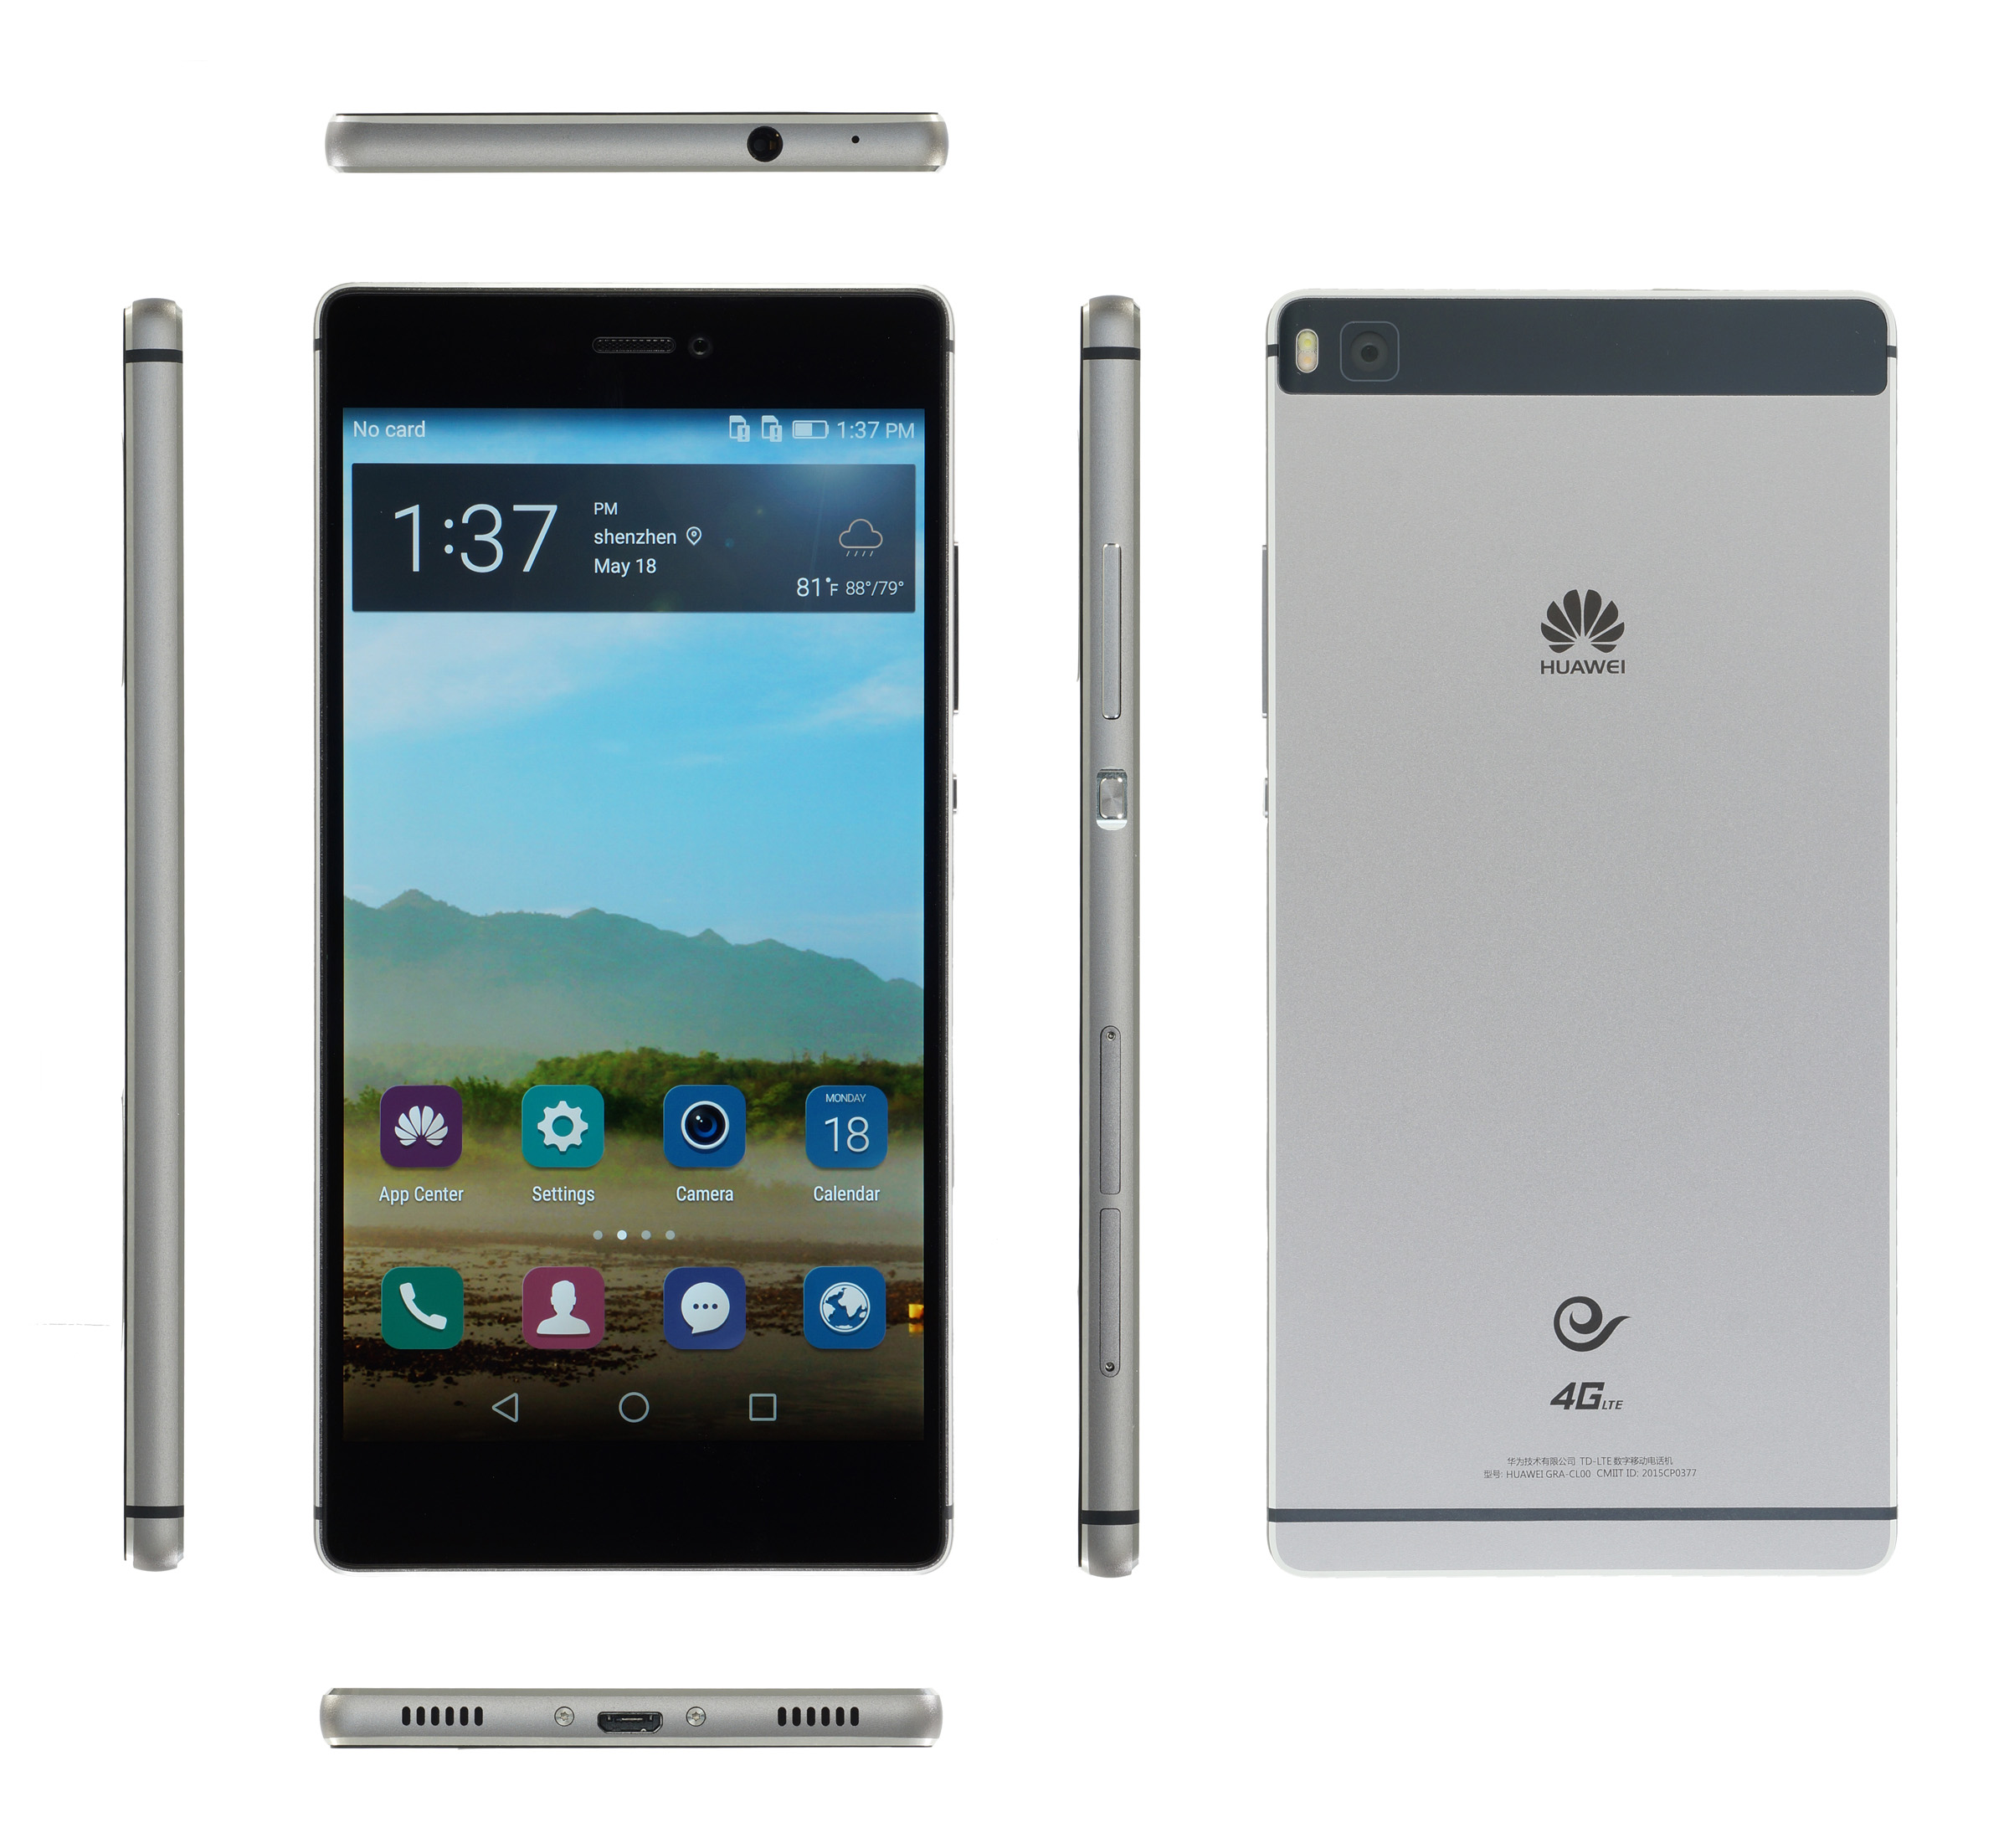 huawei p8 gra la serie m s popular de huawei sigue dando de s. Black Bedroom Furniture Sets. Home Design Ideas